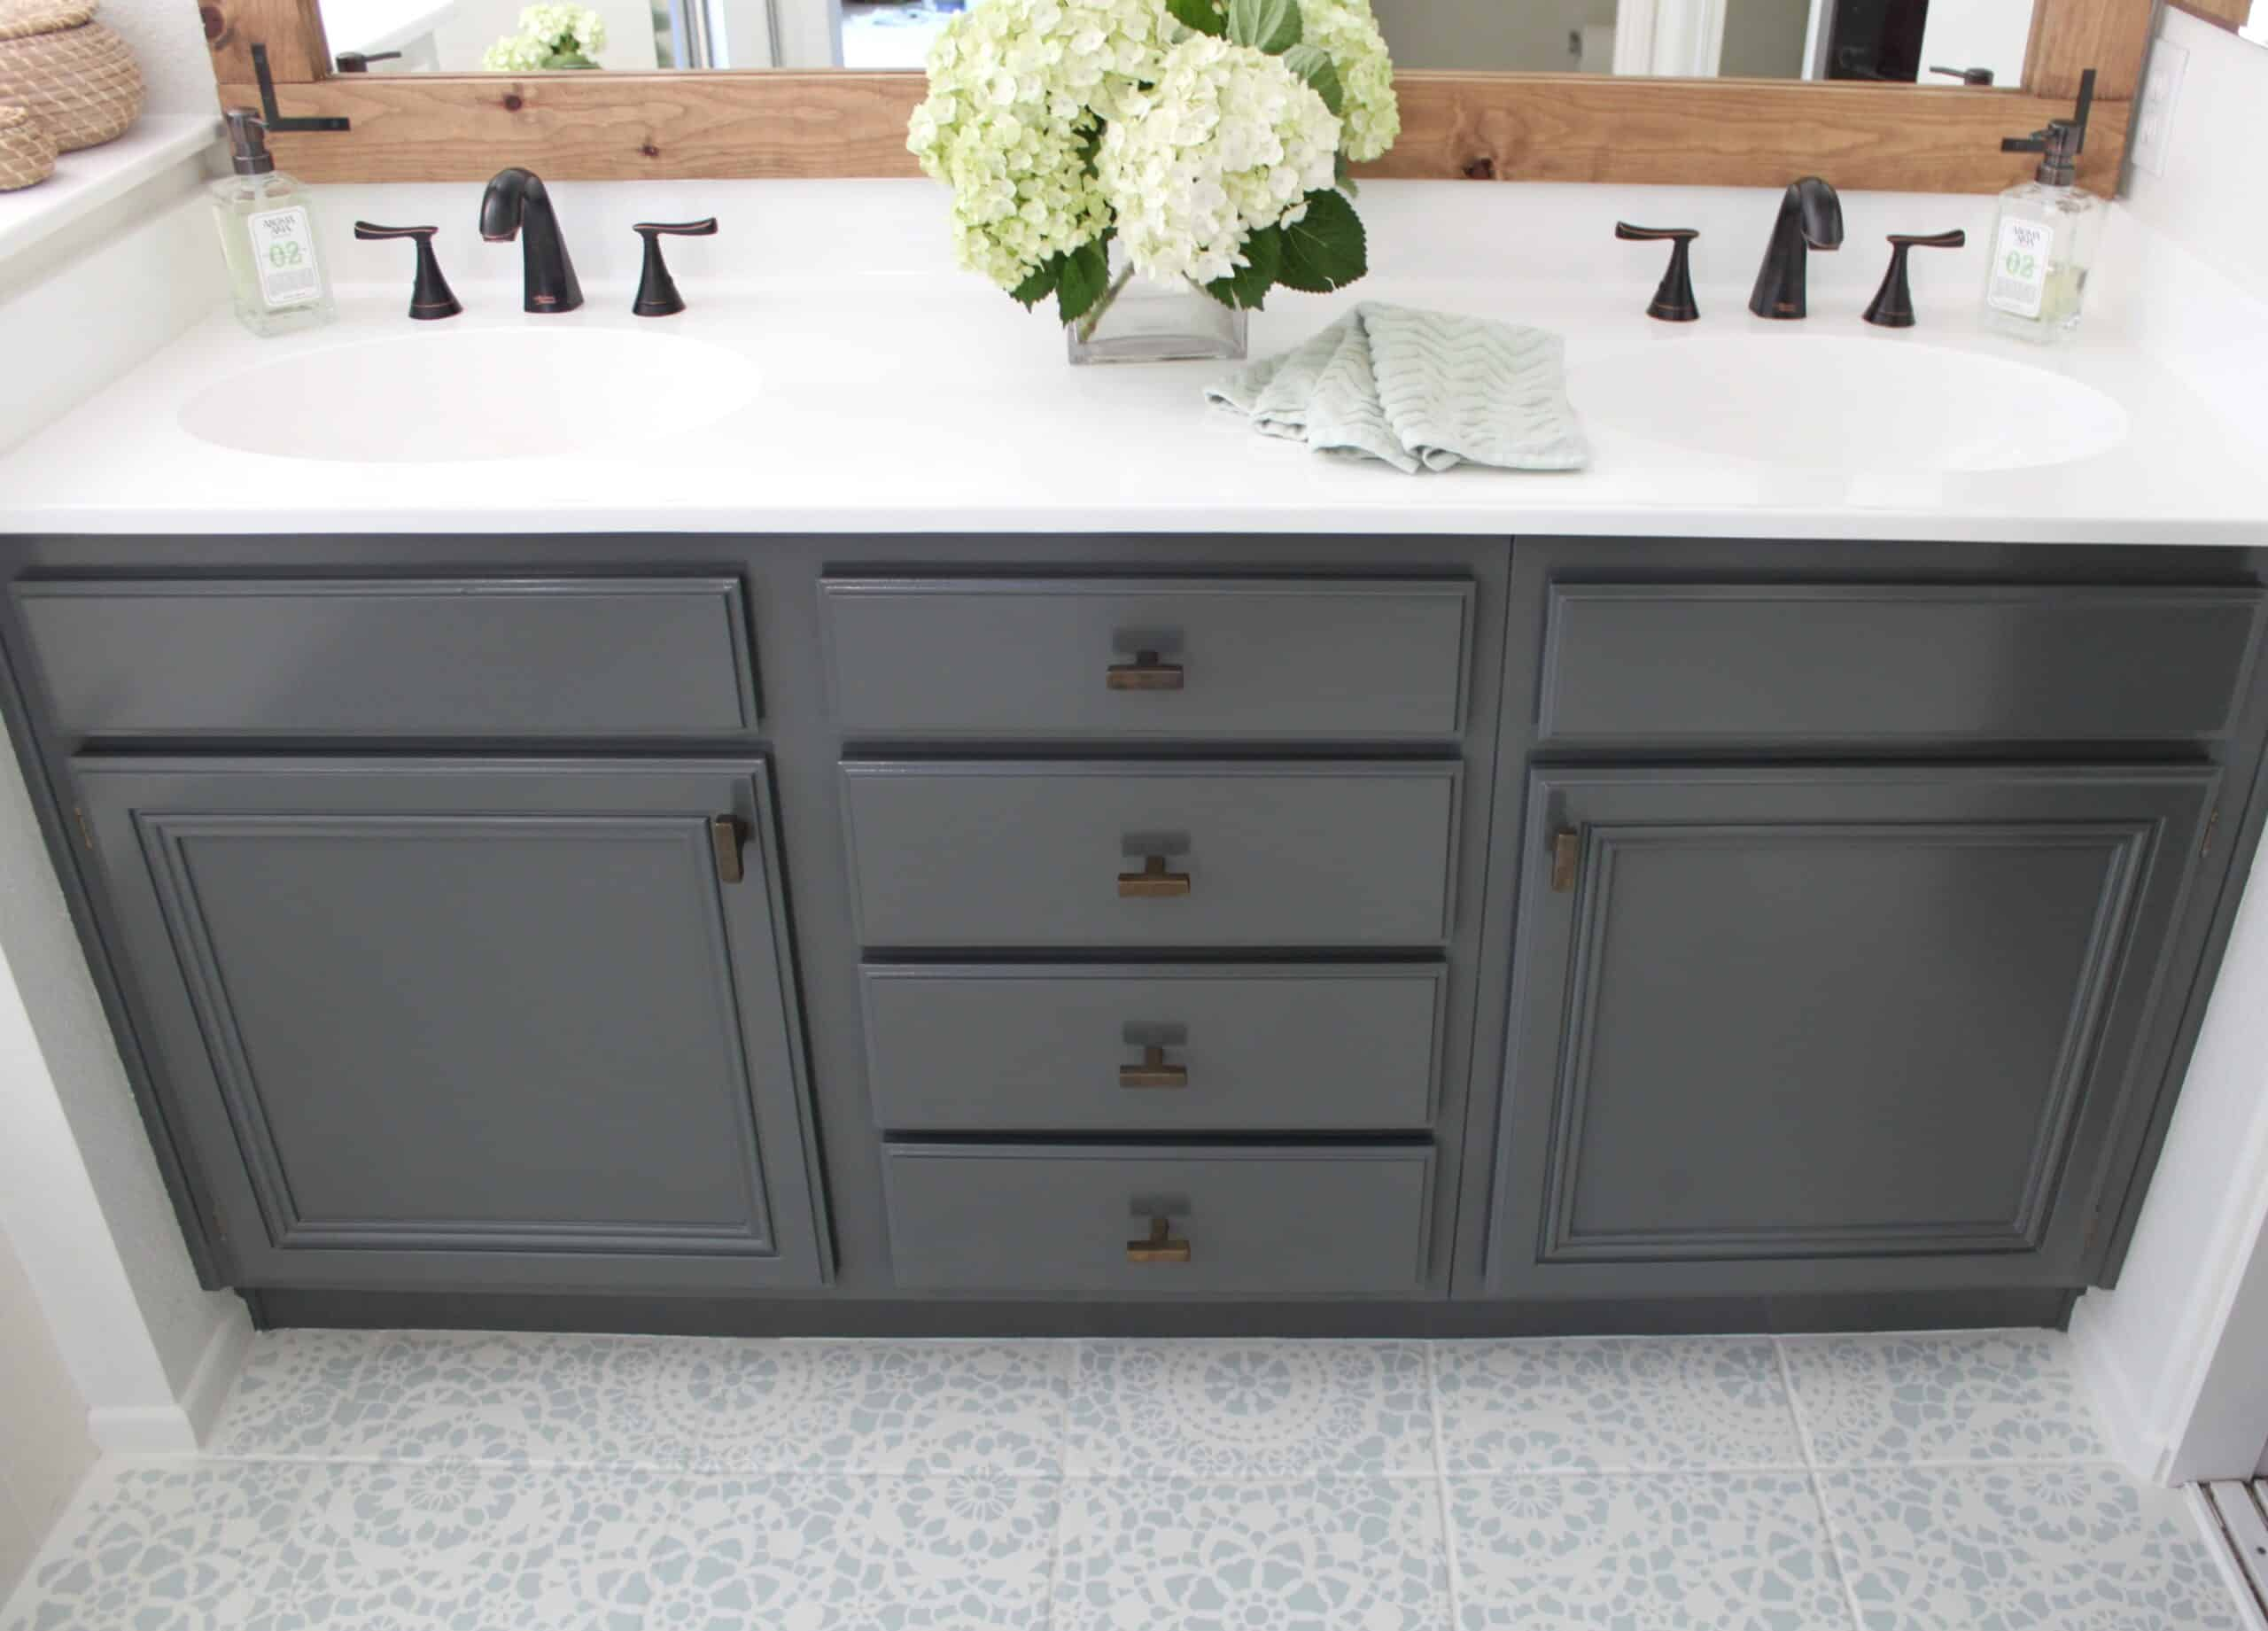 You are currently viewing Care & Cleaning of Your Kitchen-Bathroom Cabinets